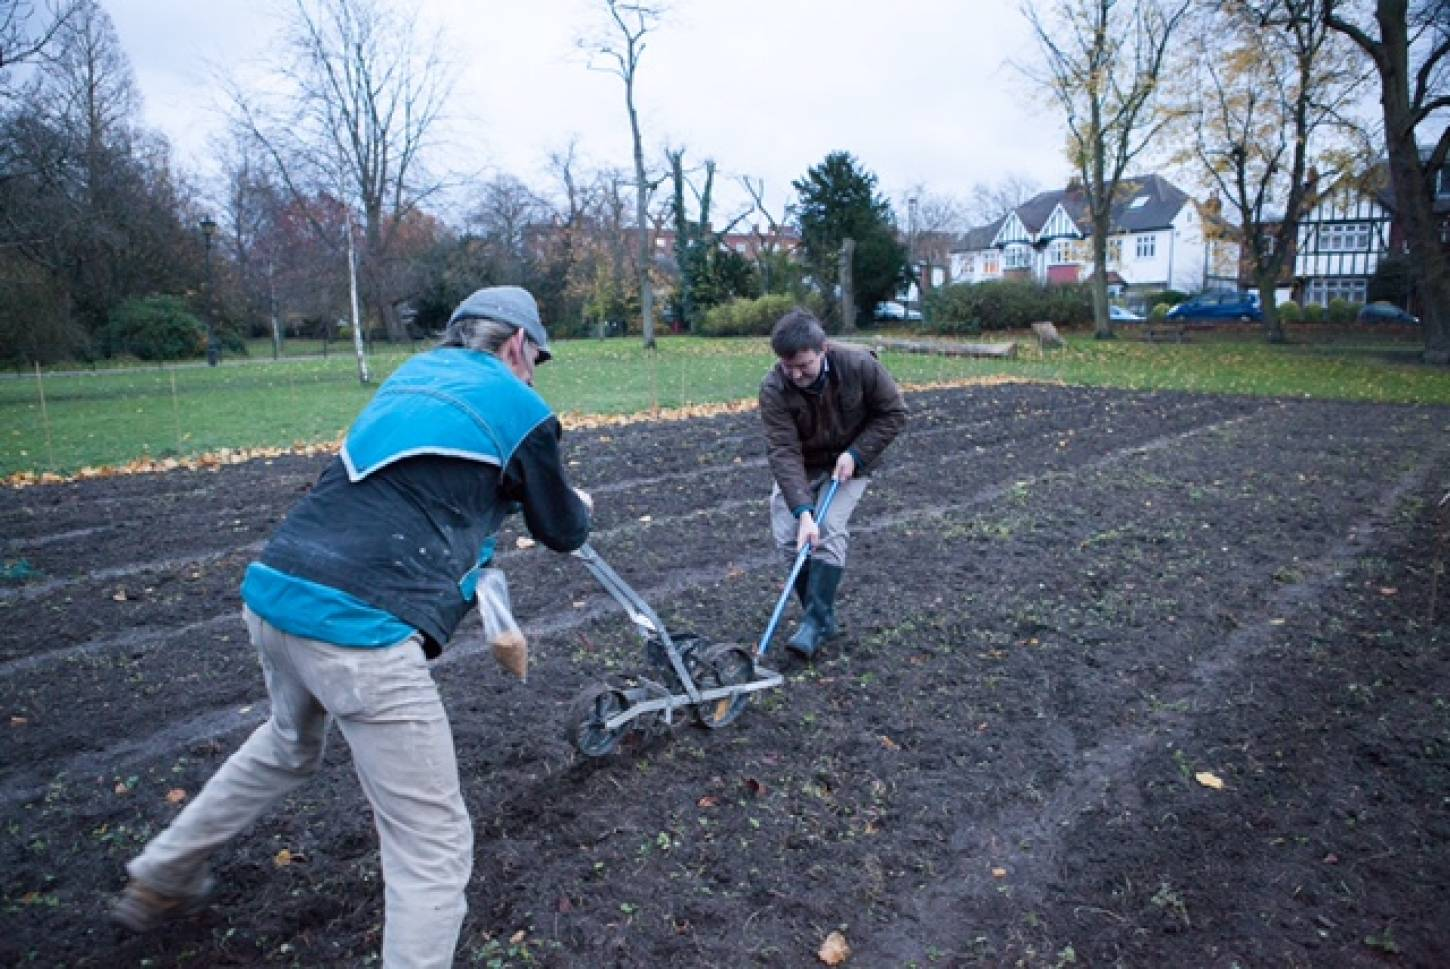 Day 5 of Ruskin Park sowing with Galina Wells of the <a Href='https://www.facebook.com/FriendsofRuskinPark/?fref=ts' target=_blank>Friends of Ruskin Park</a>, pics Nick Wells of <A href='http://friendsofruskinpark.org.uk/?page_id=1753' target=_blank>FoRP</a>